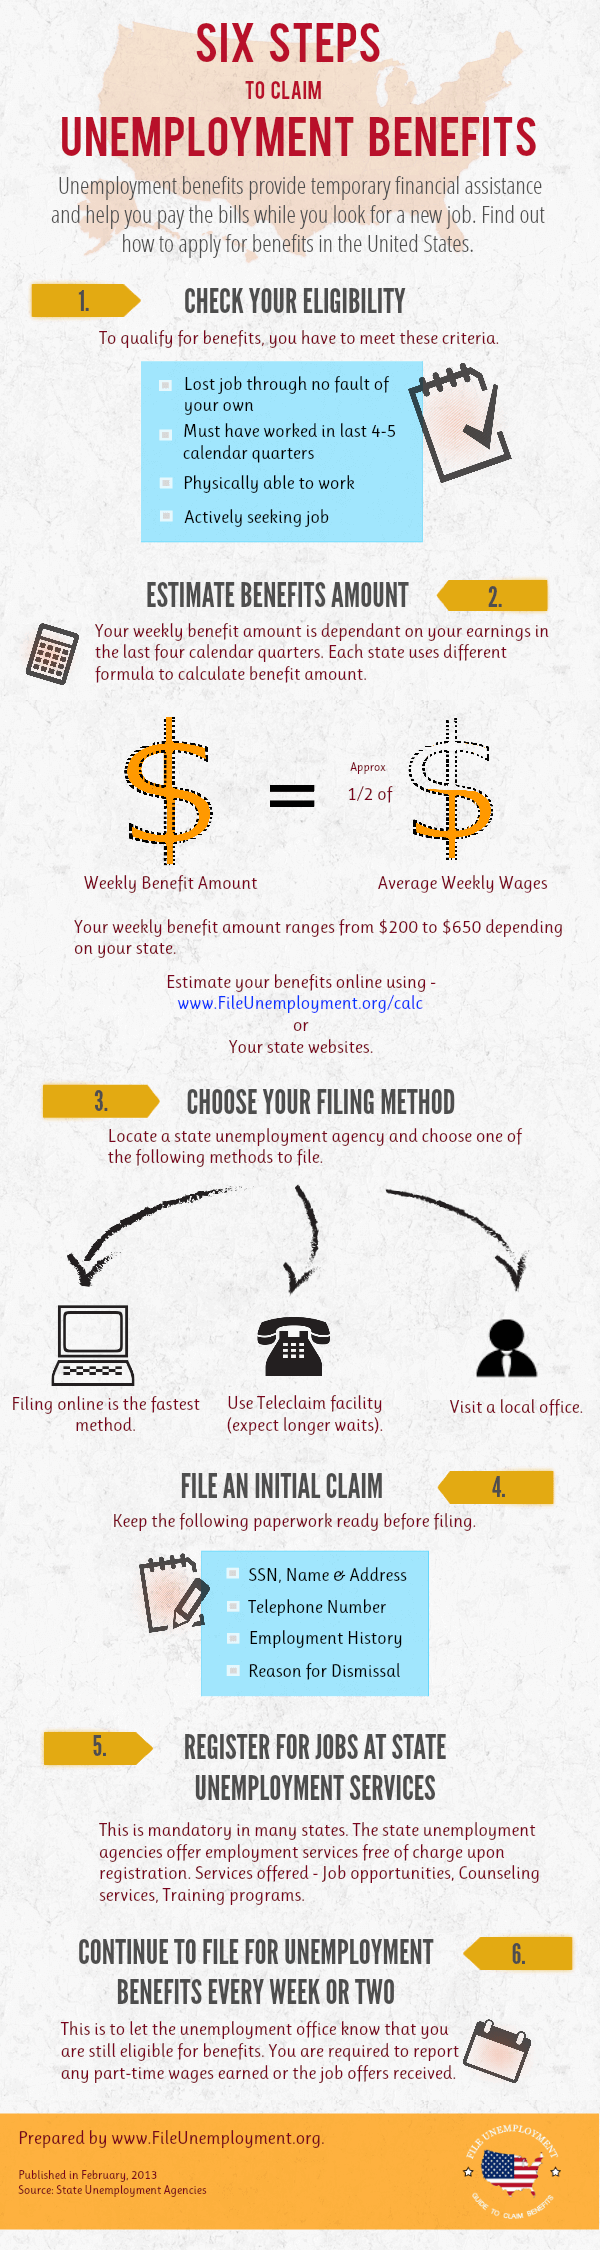 Steps to Claim Unemployment Benefits